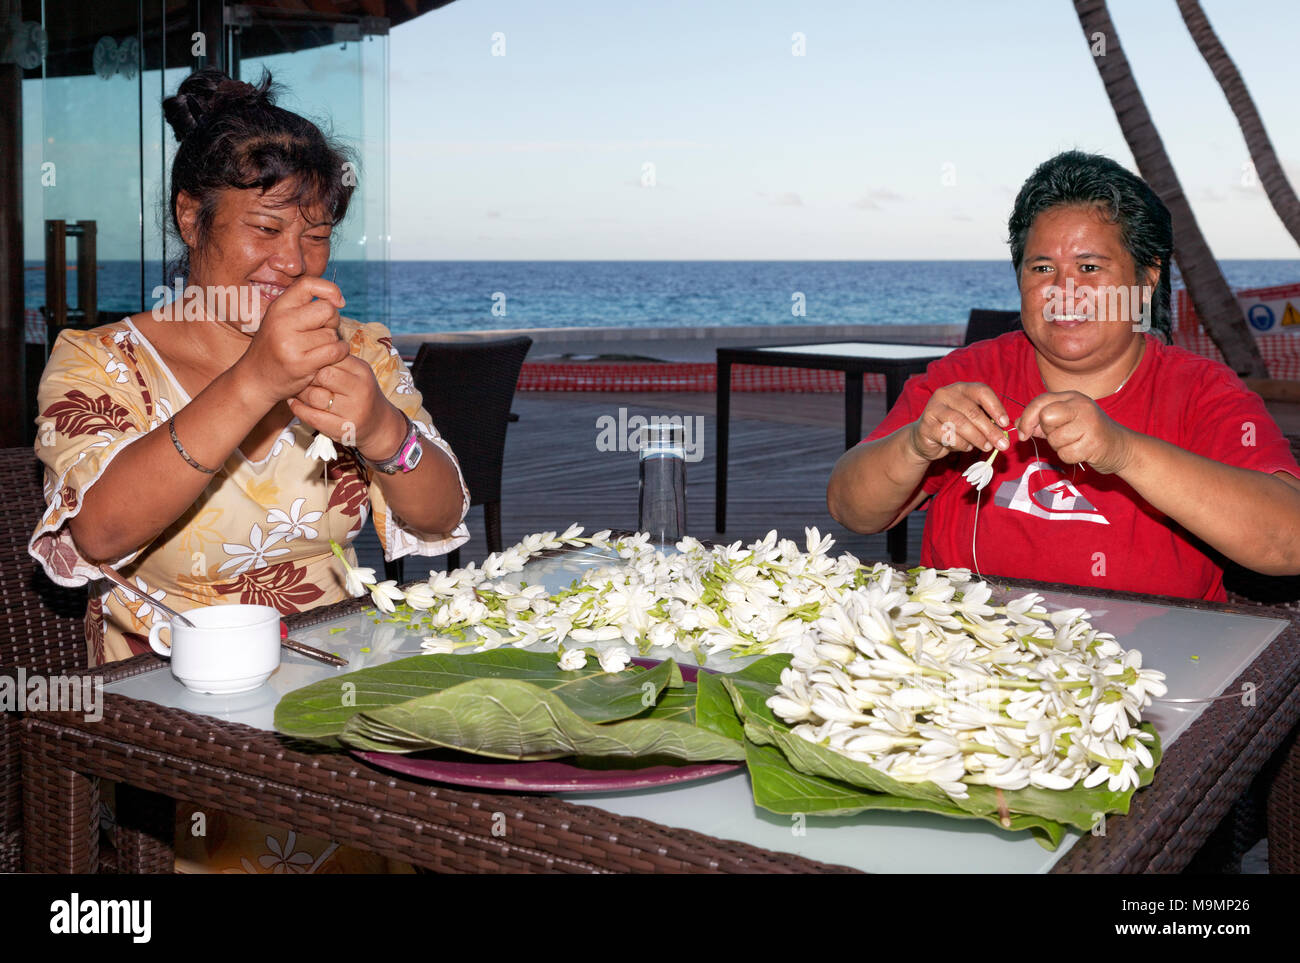 Two women, Polynesian, threads white blossoms, flowers to necklaces, Rangiroa, society islands, Windward Islands - Stock Image